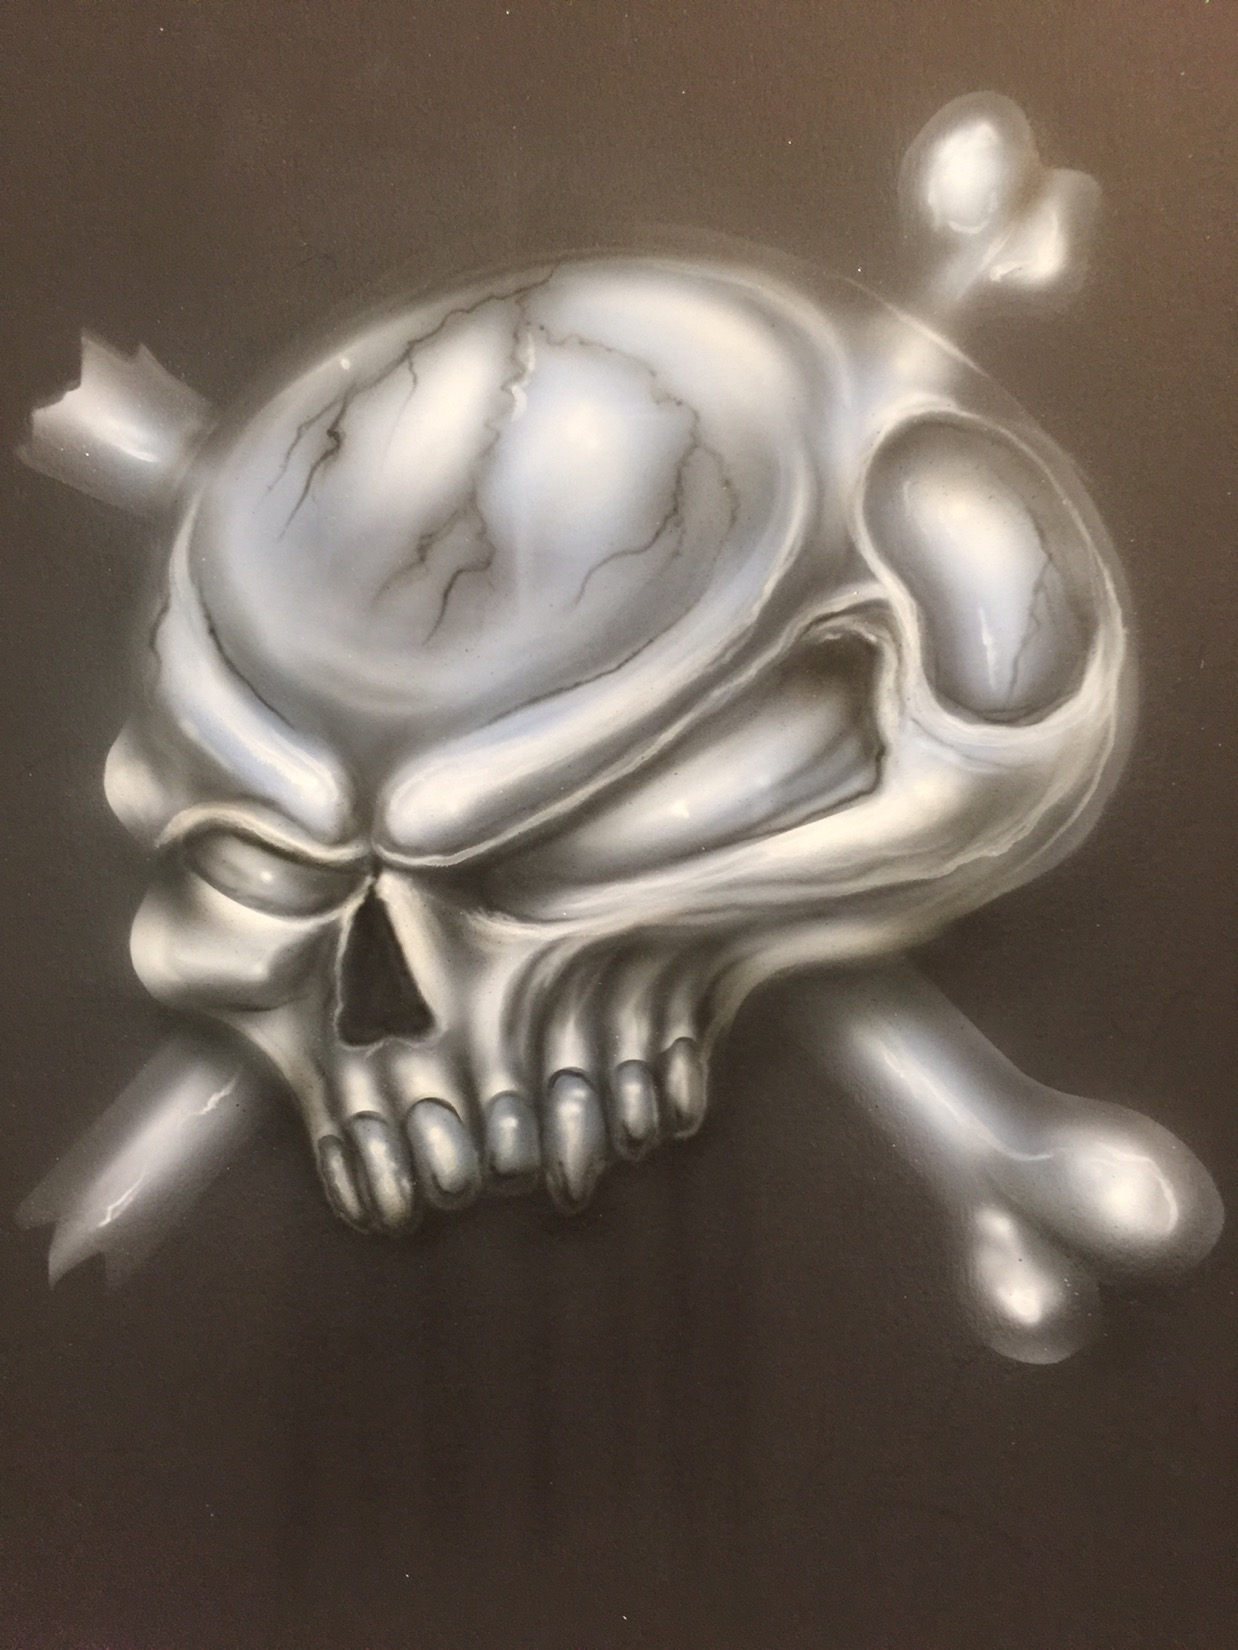 airbrush classes are underway